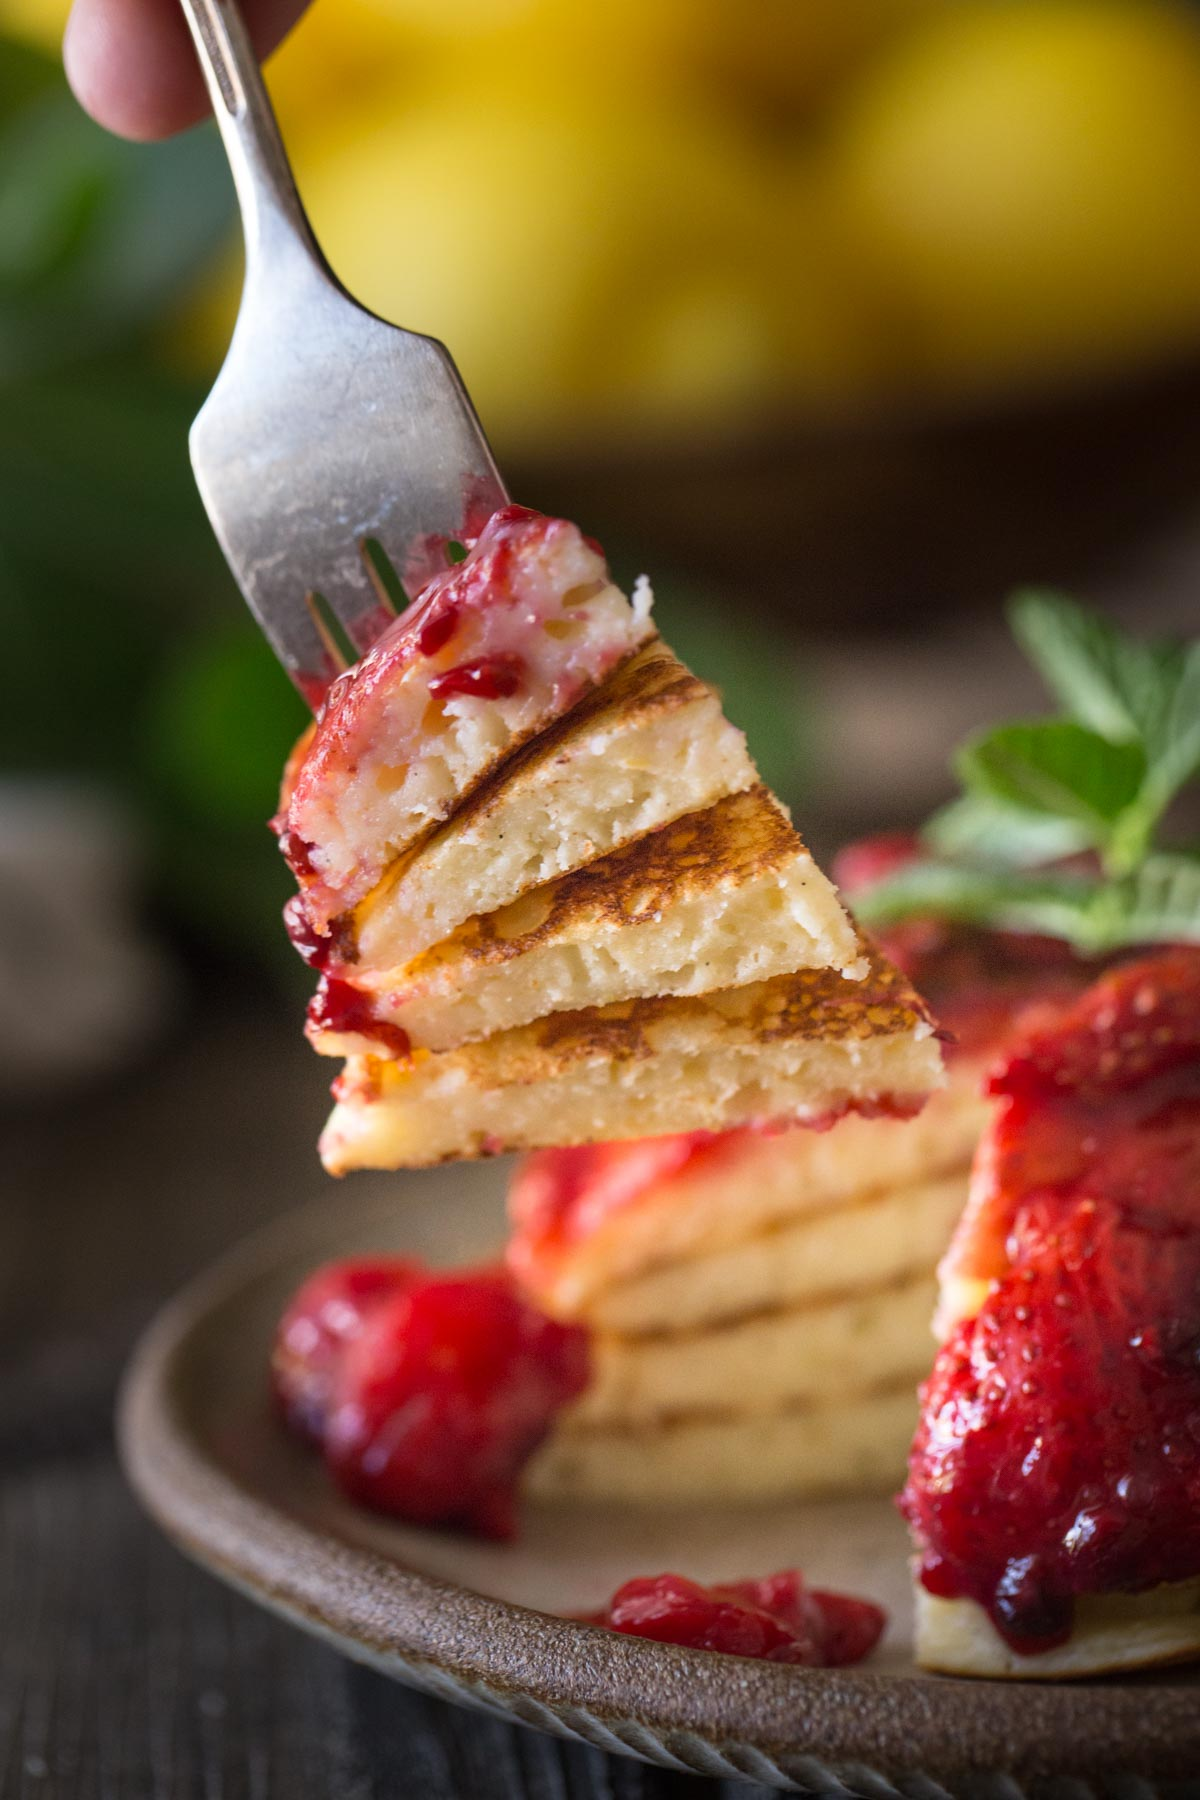 A forkful of Lemon Ricotta pancakes and fresh berry sauce.